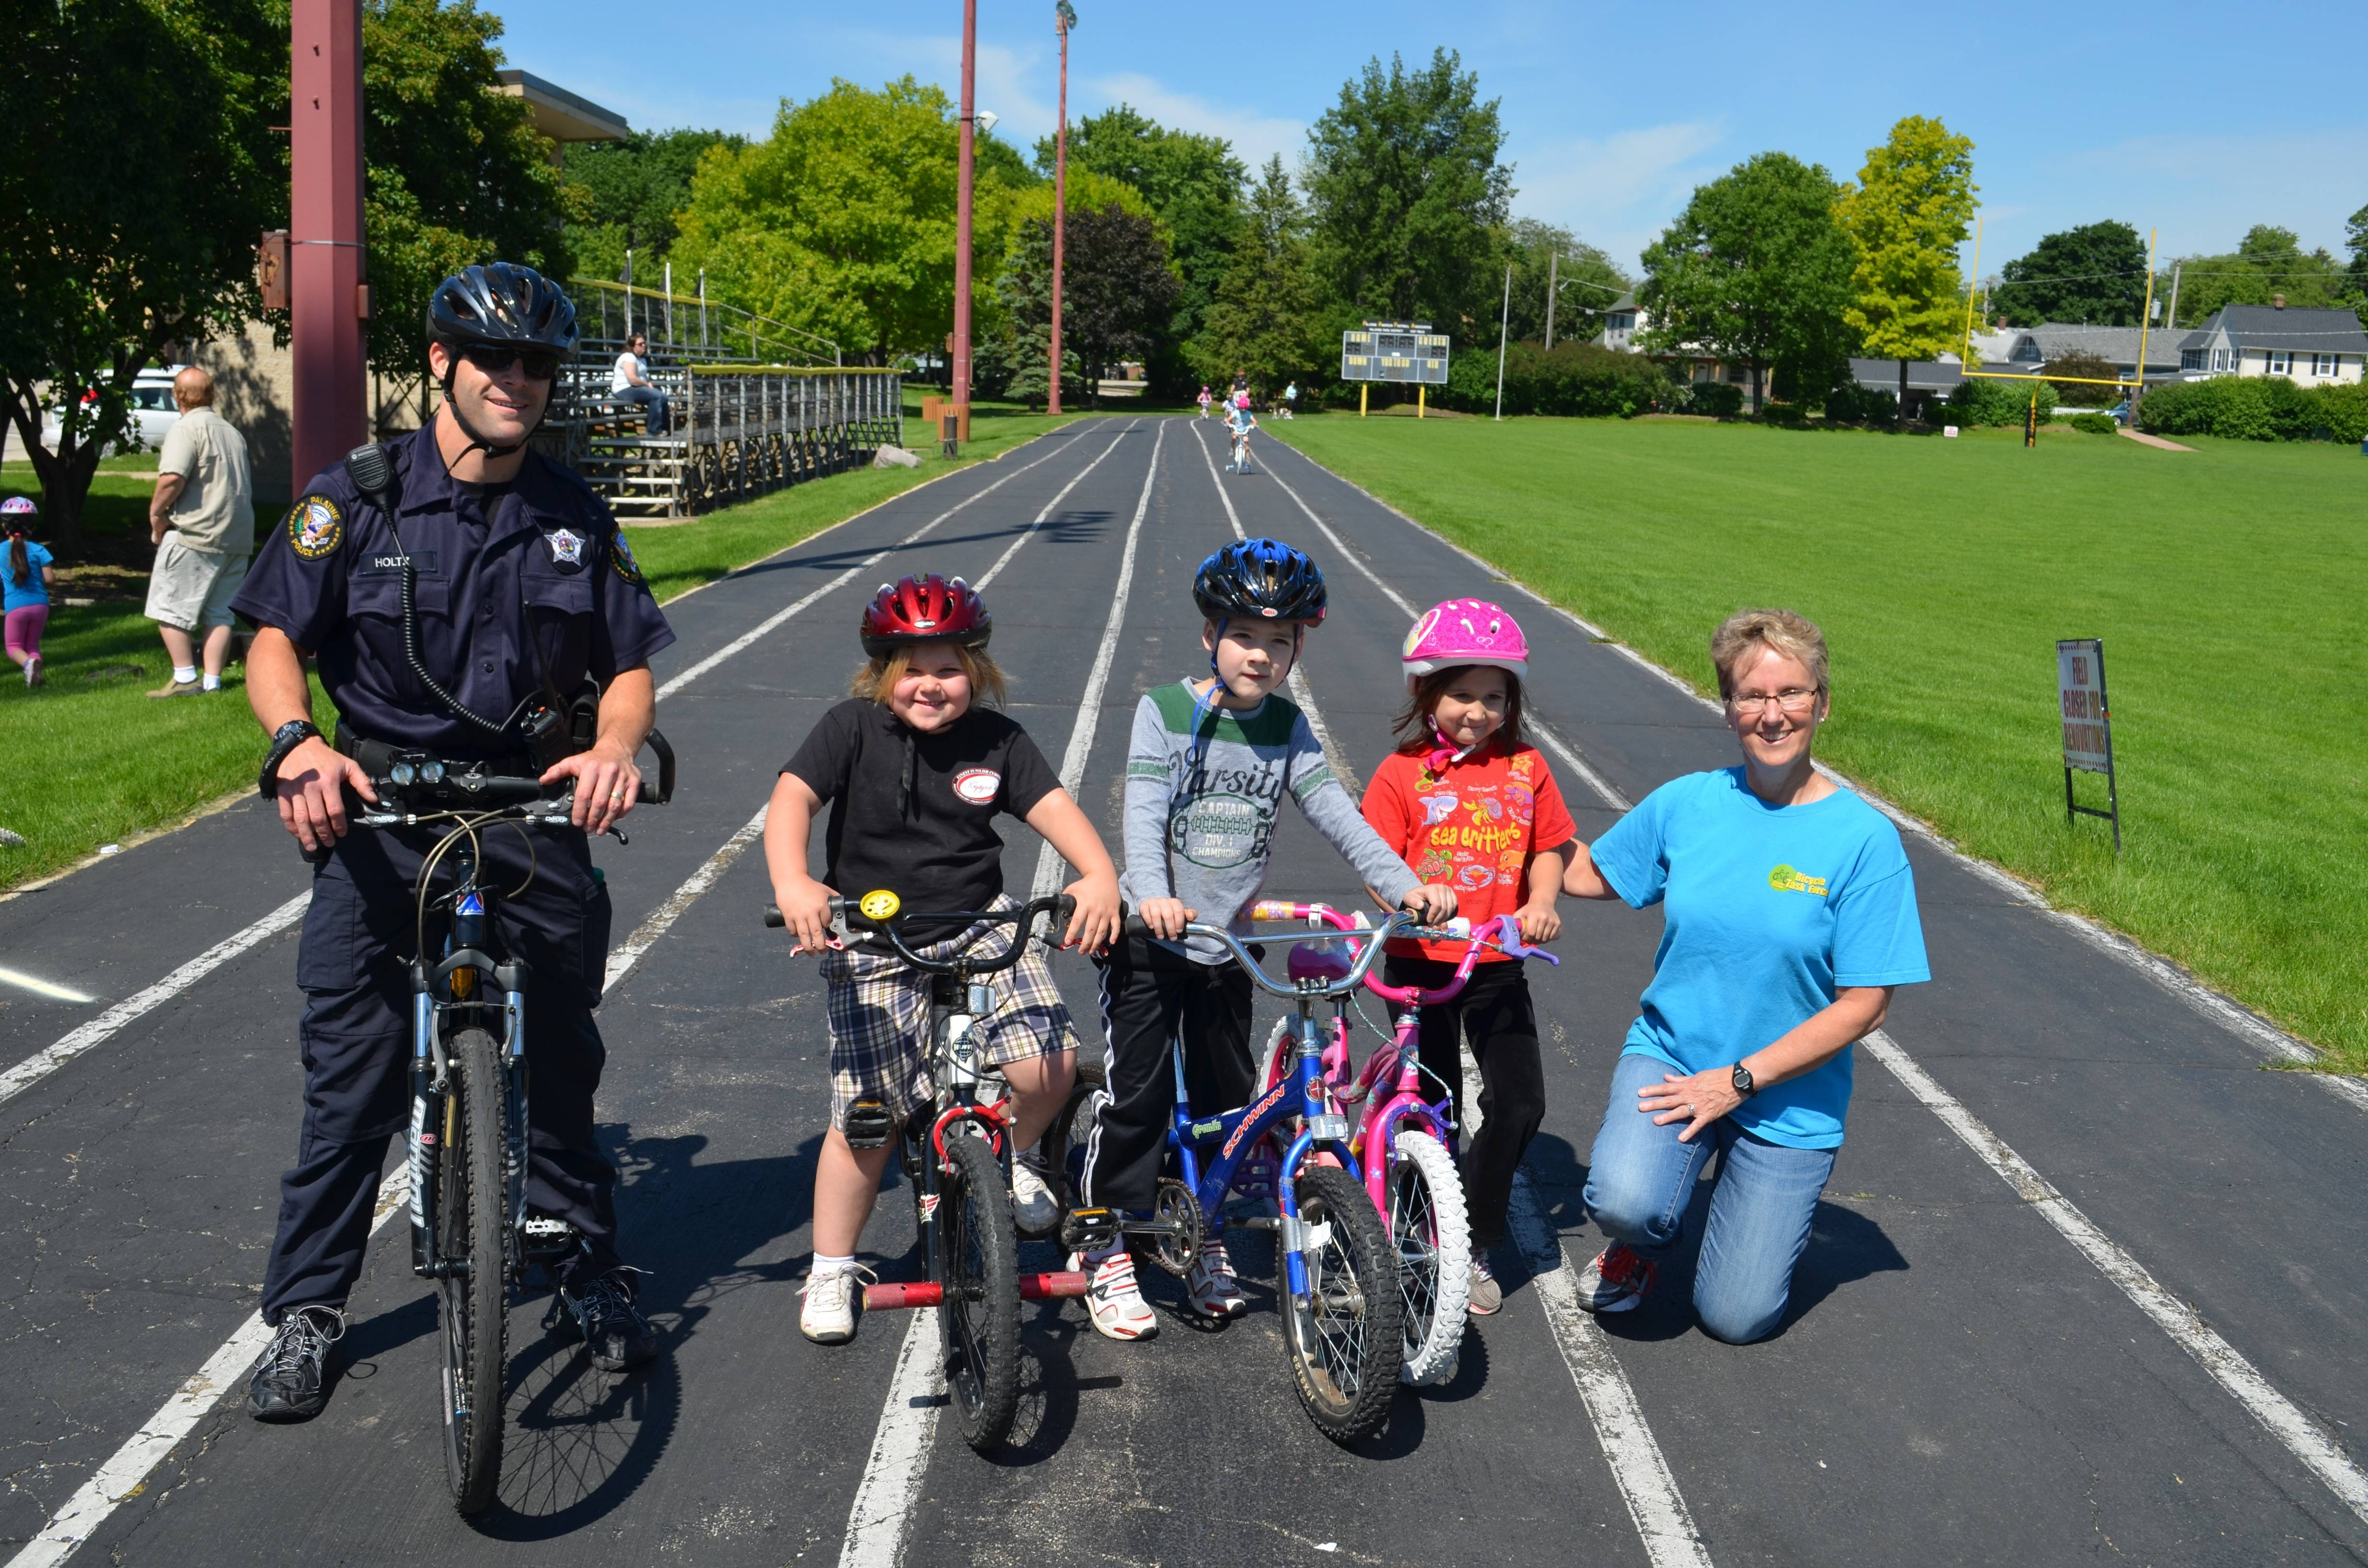 Members of the Bike Palatine Club and the Palatine Police Department work with small groups of riders at the 2013 Bike Safety Clinic and Ride.